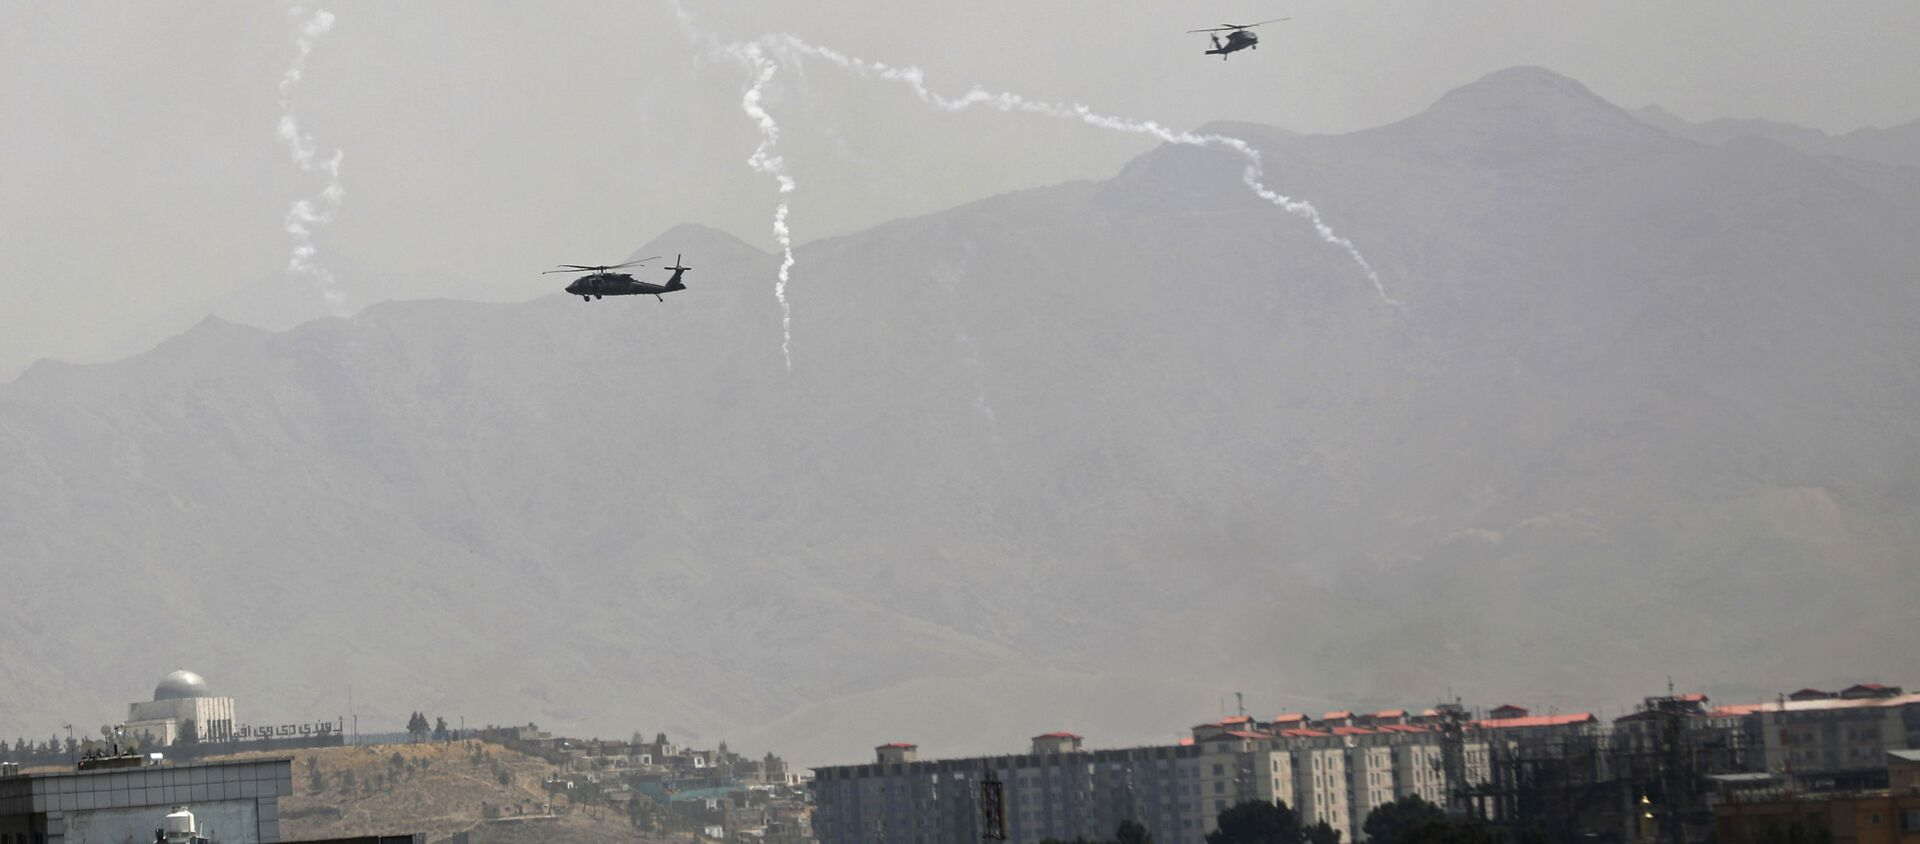 Anti-missile decoy flares are deployed as U.S. Black Hawk military helicopters and a dirigible balloon fly over the city of Kabul, Afghanistan, Sunday, Aug. 15, 2021. - Sputnik International, 1920